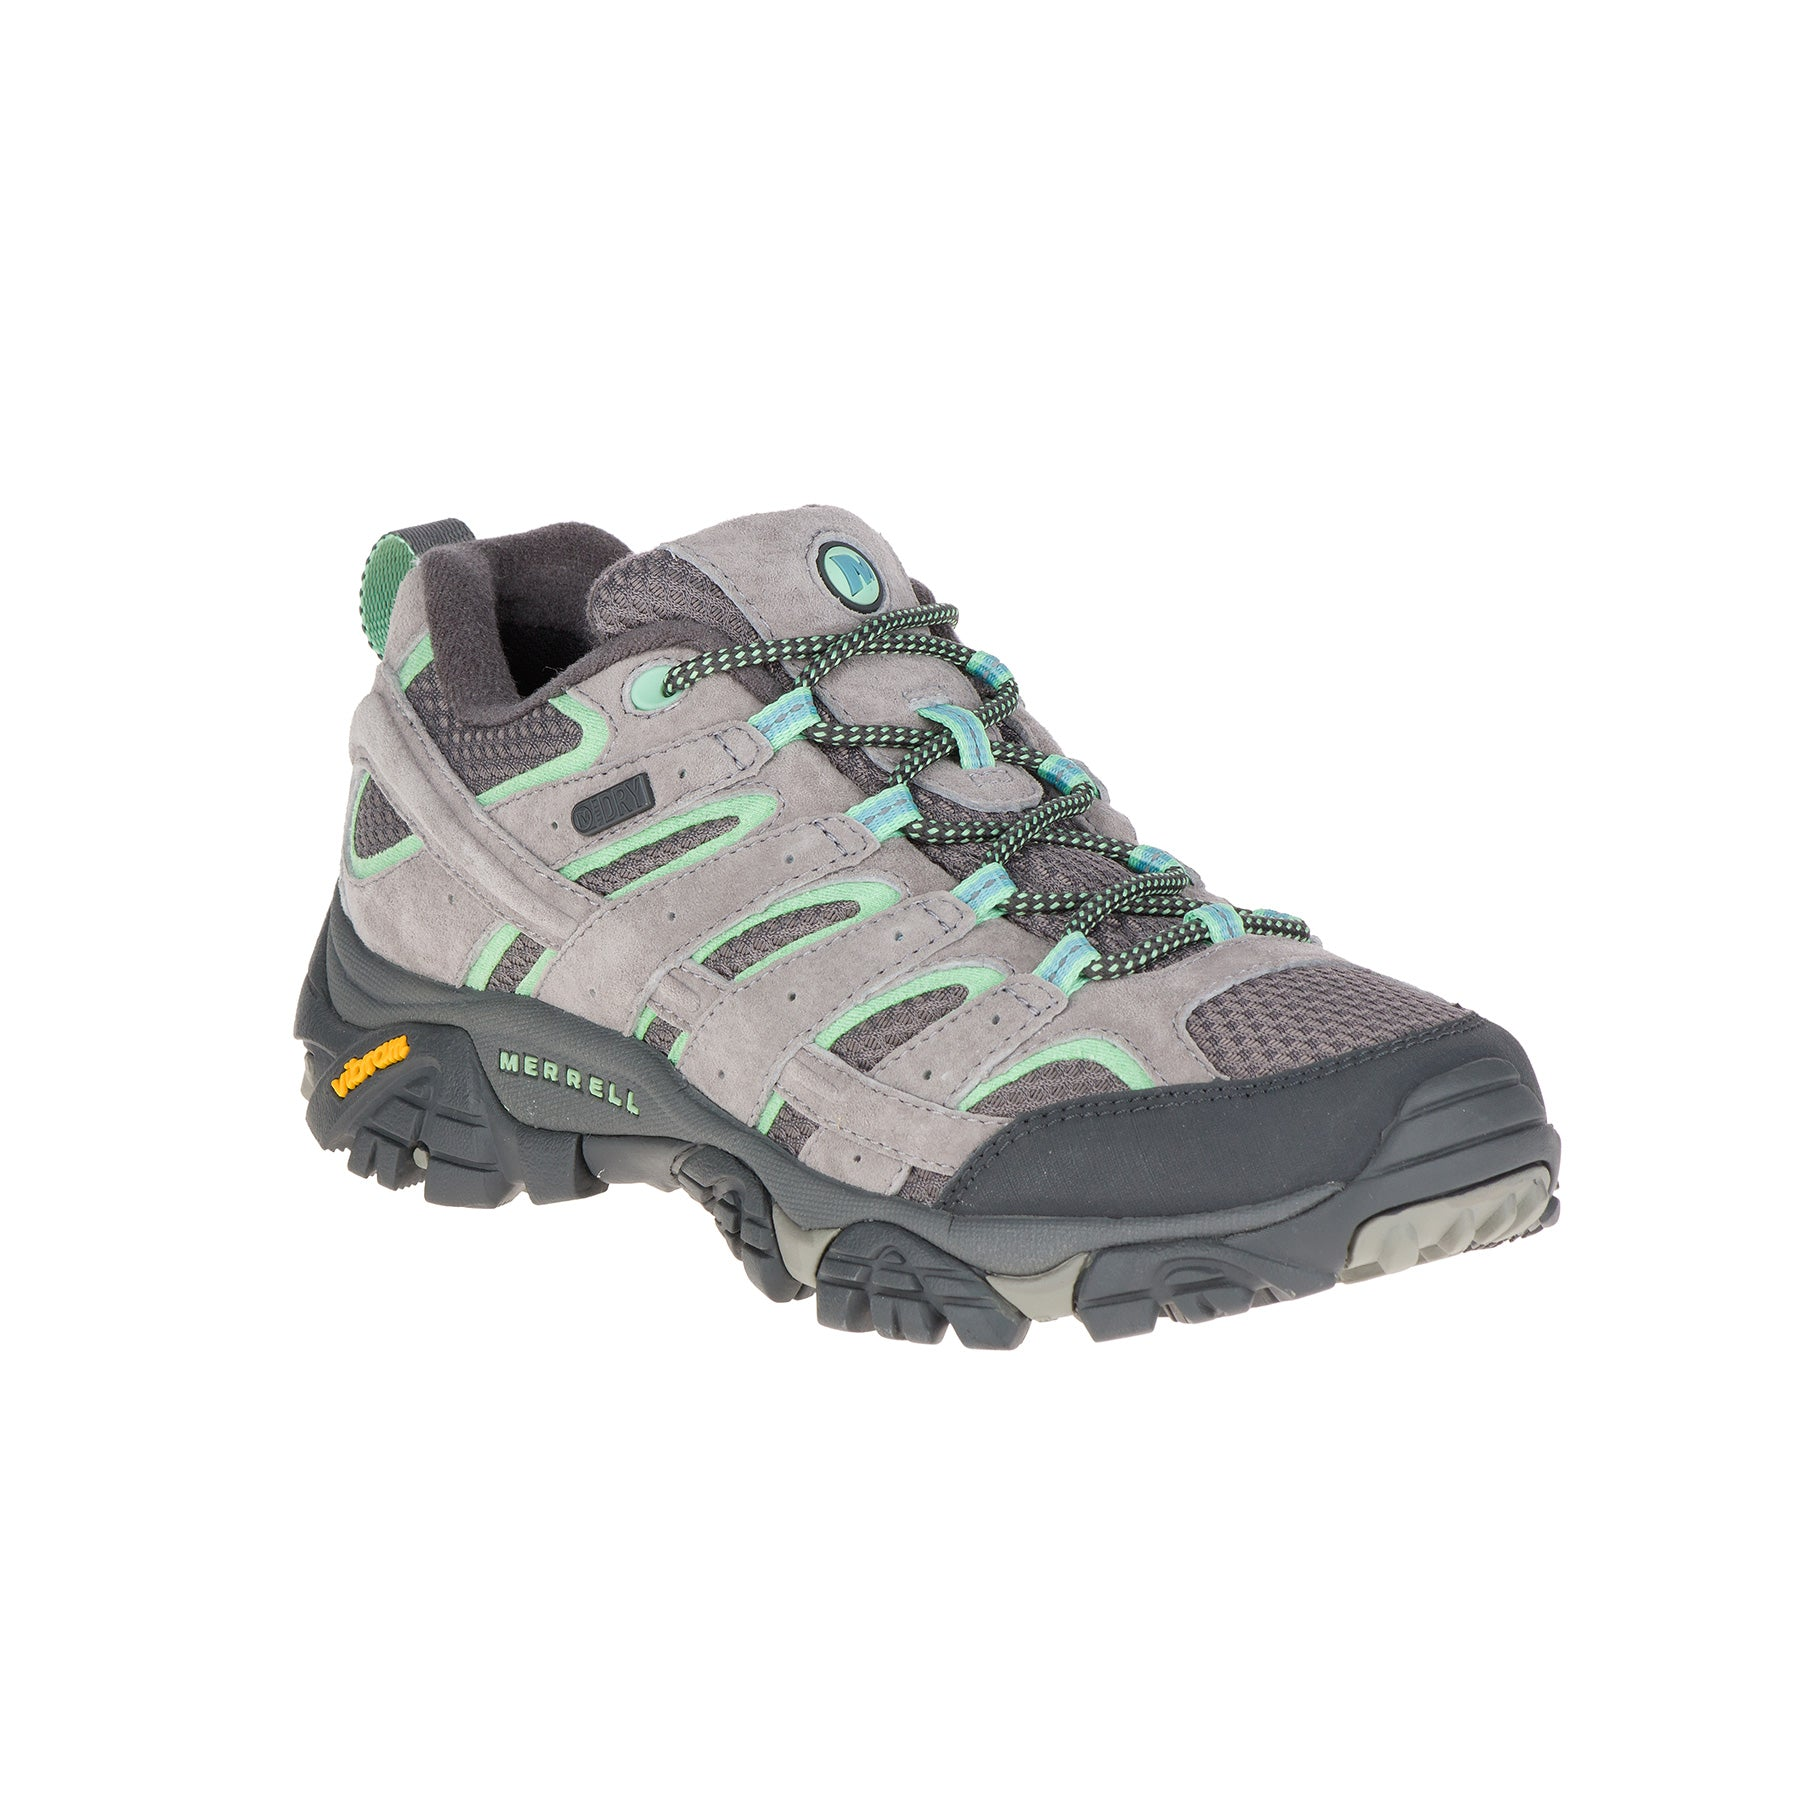 merrell moab 2 waterproof womens hiking shoe in color grey with light green accents sideview